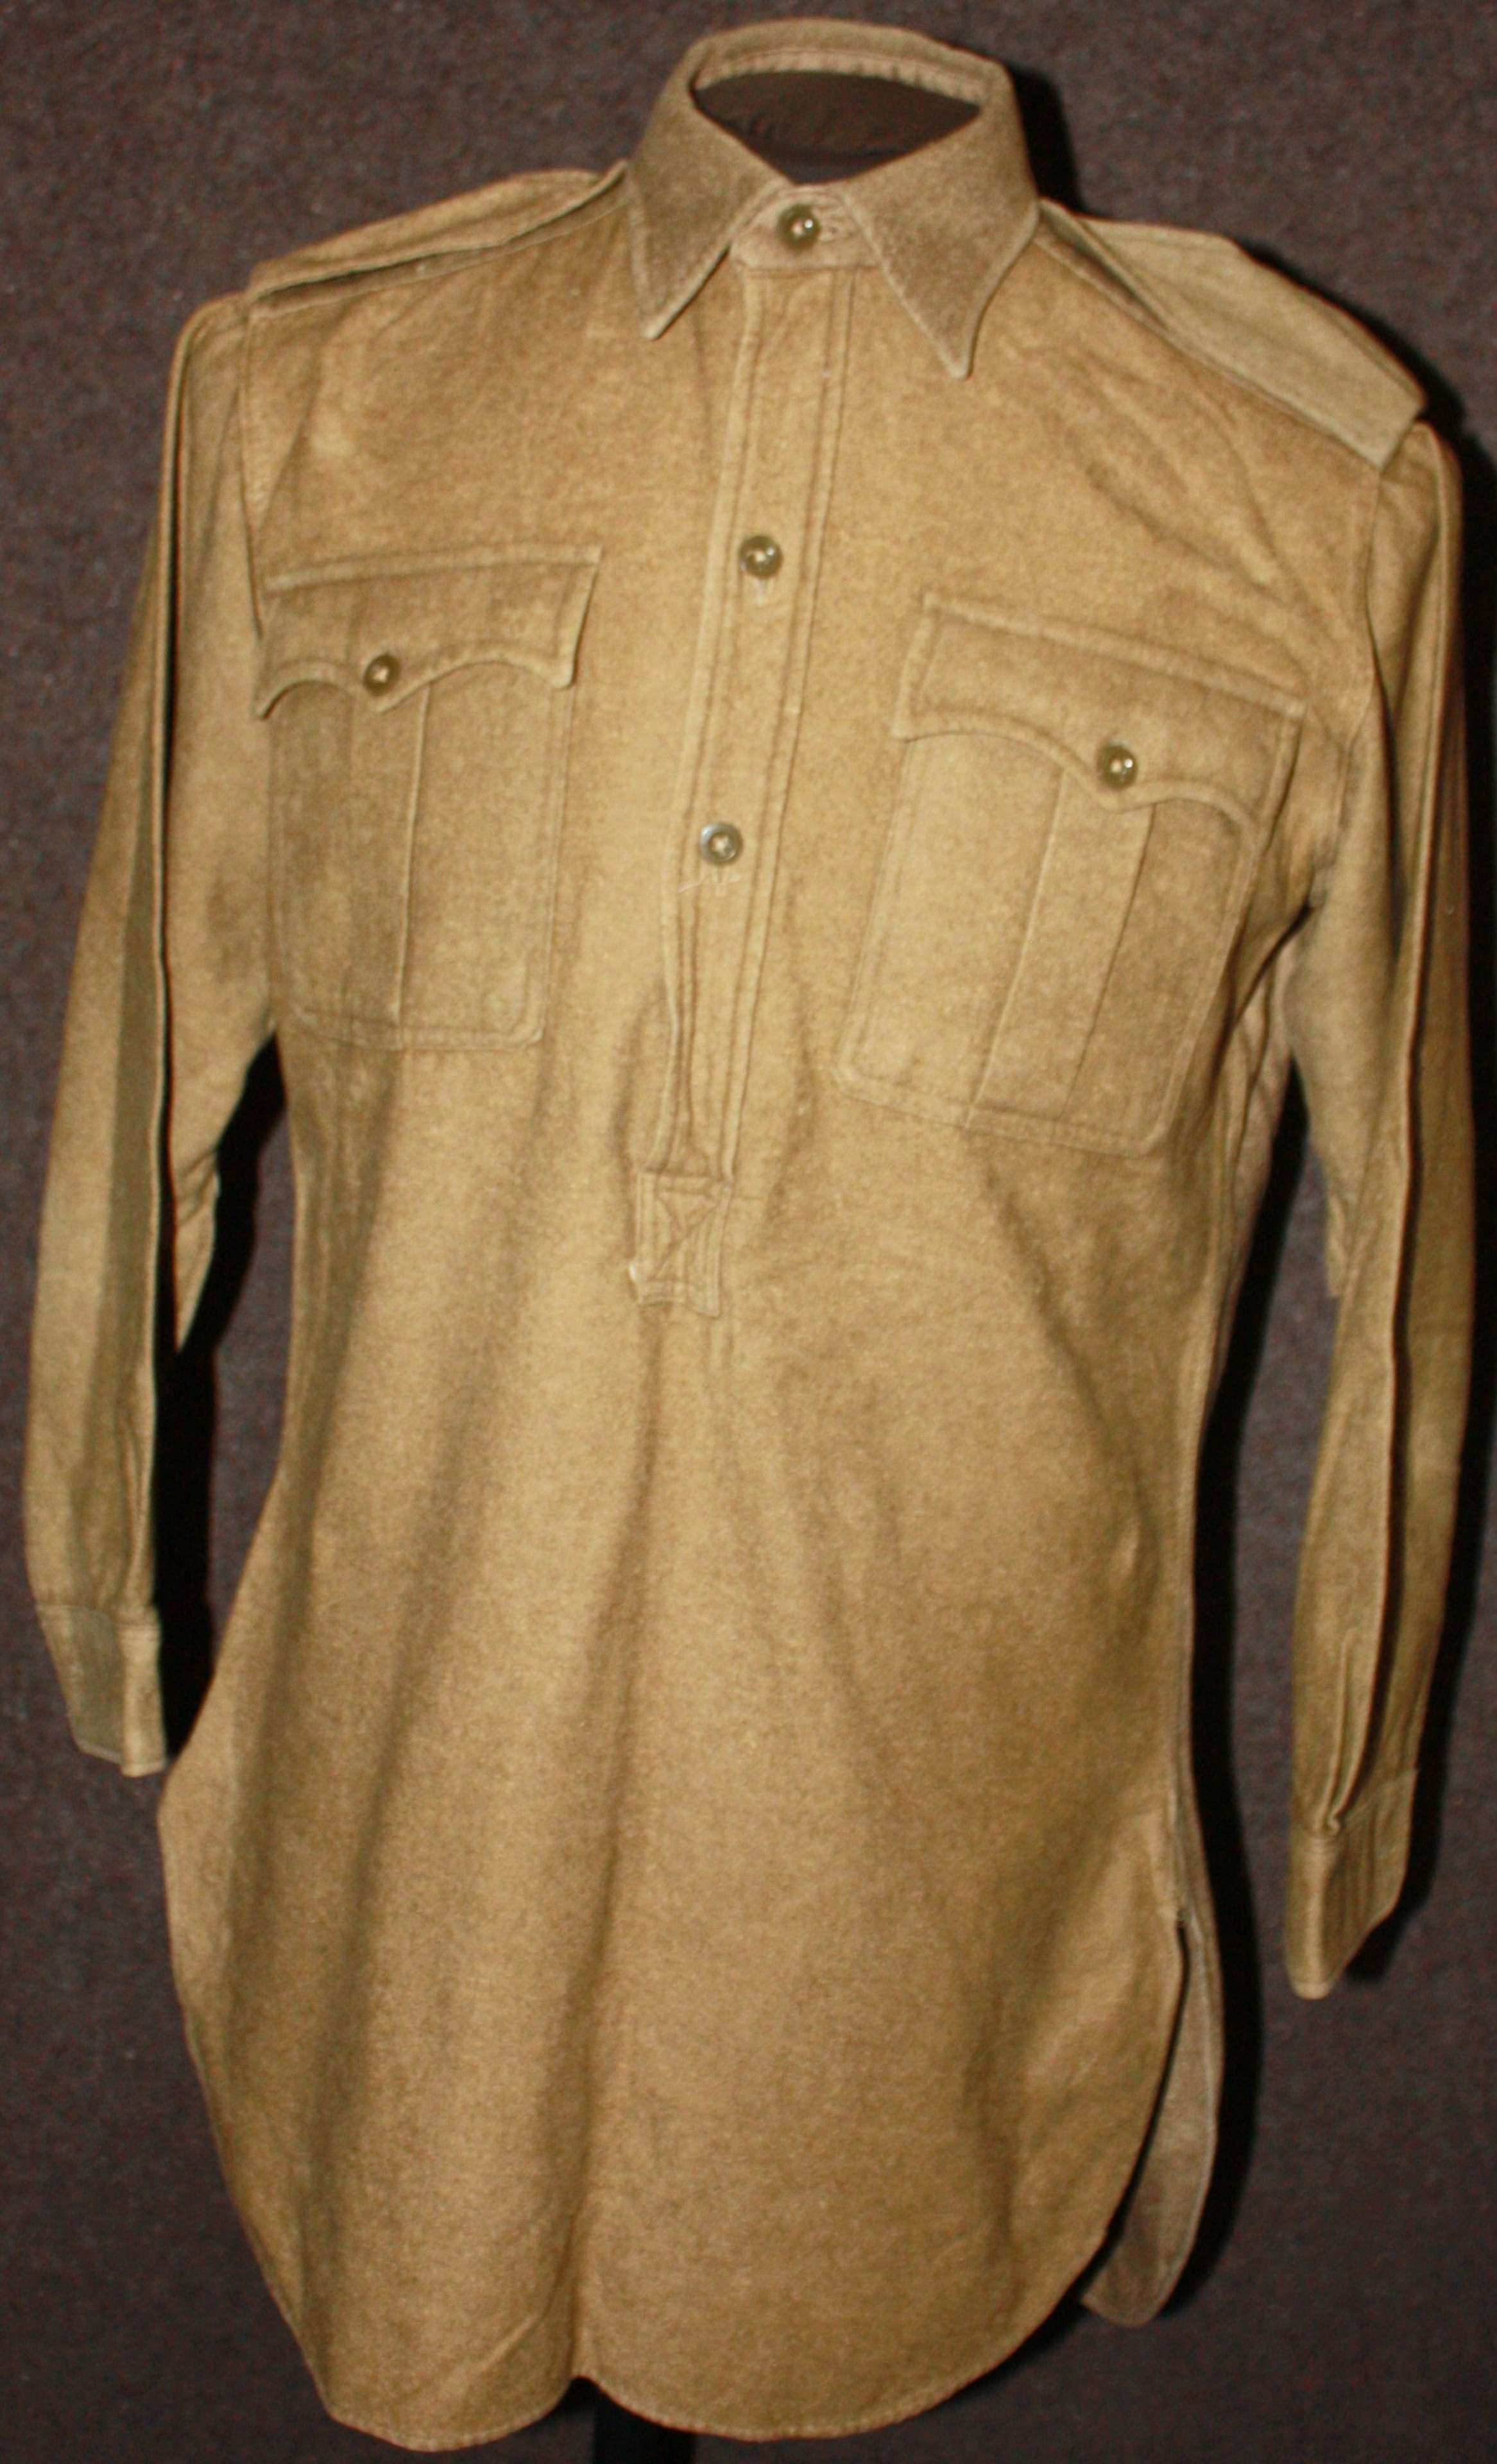 A WWII COLLAR ATTACHED SHIRT SIZE 38-39 APPROX